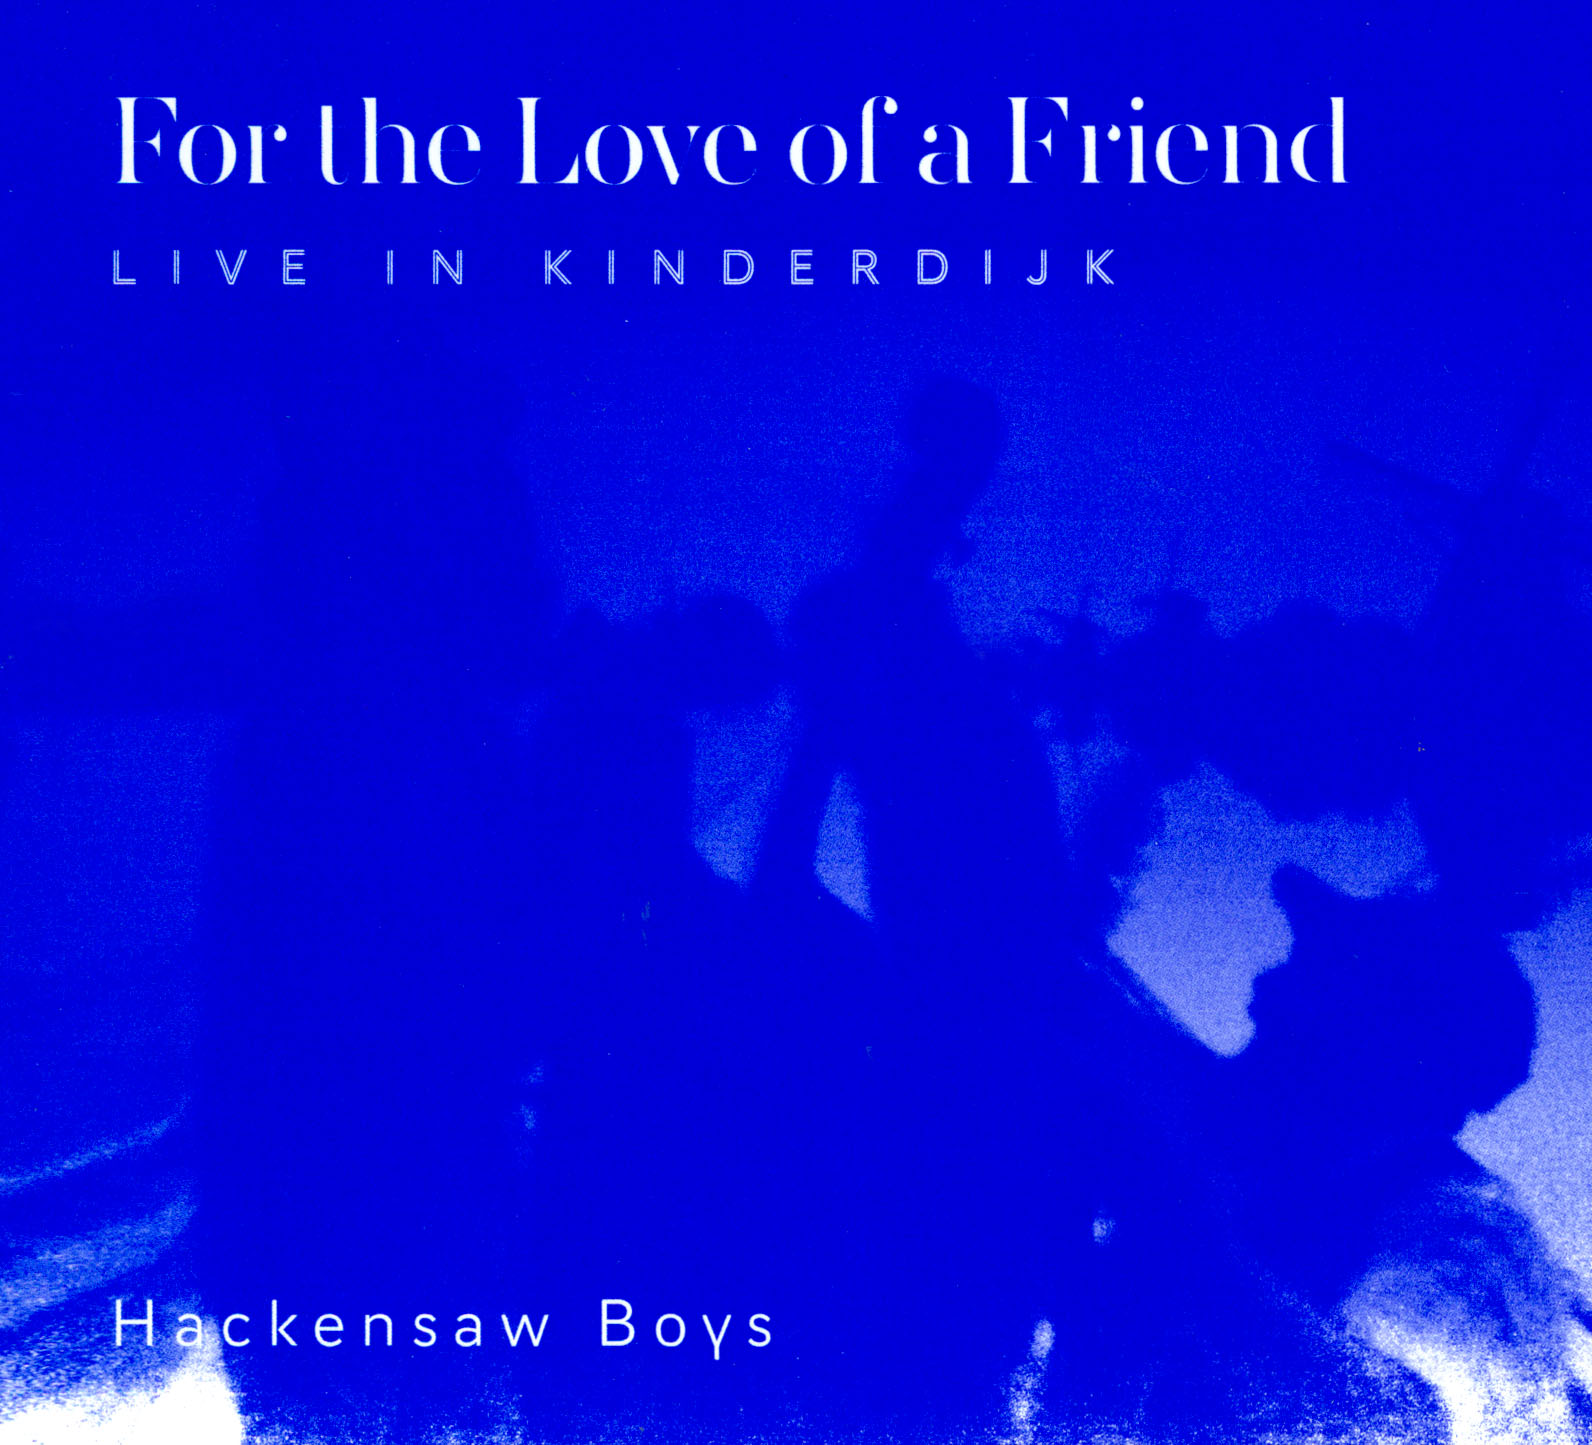 Hackensaw Boys: For the Love of a Friend - Documentary